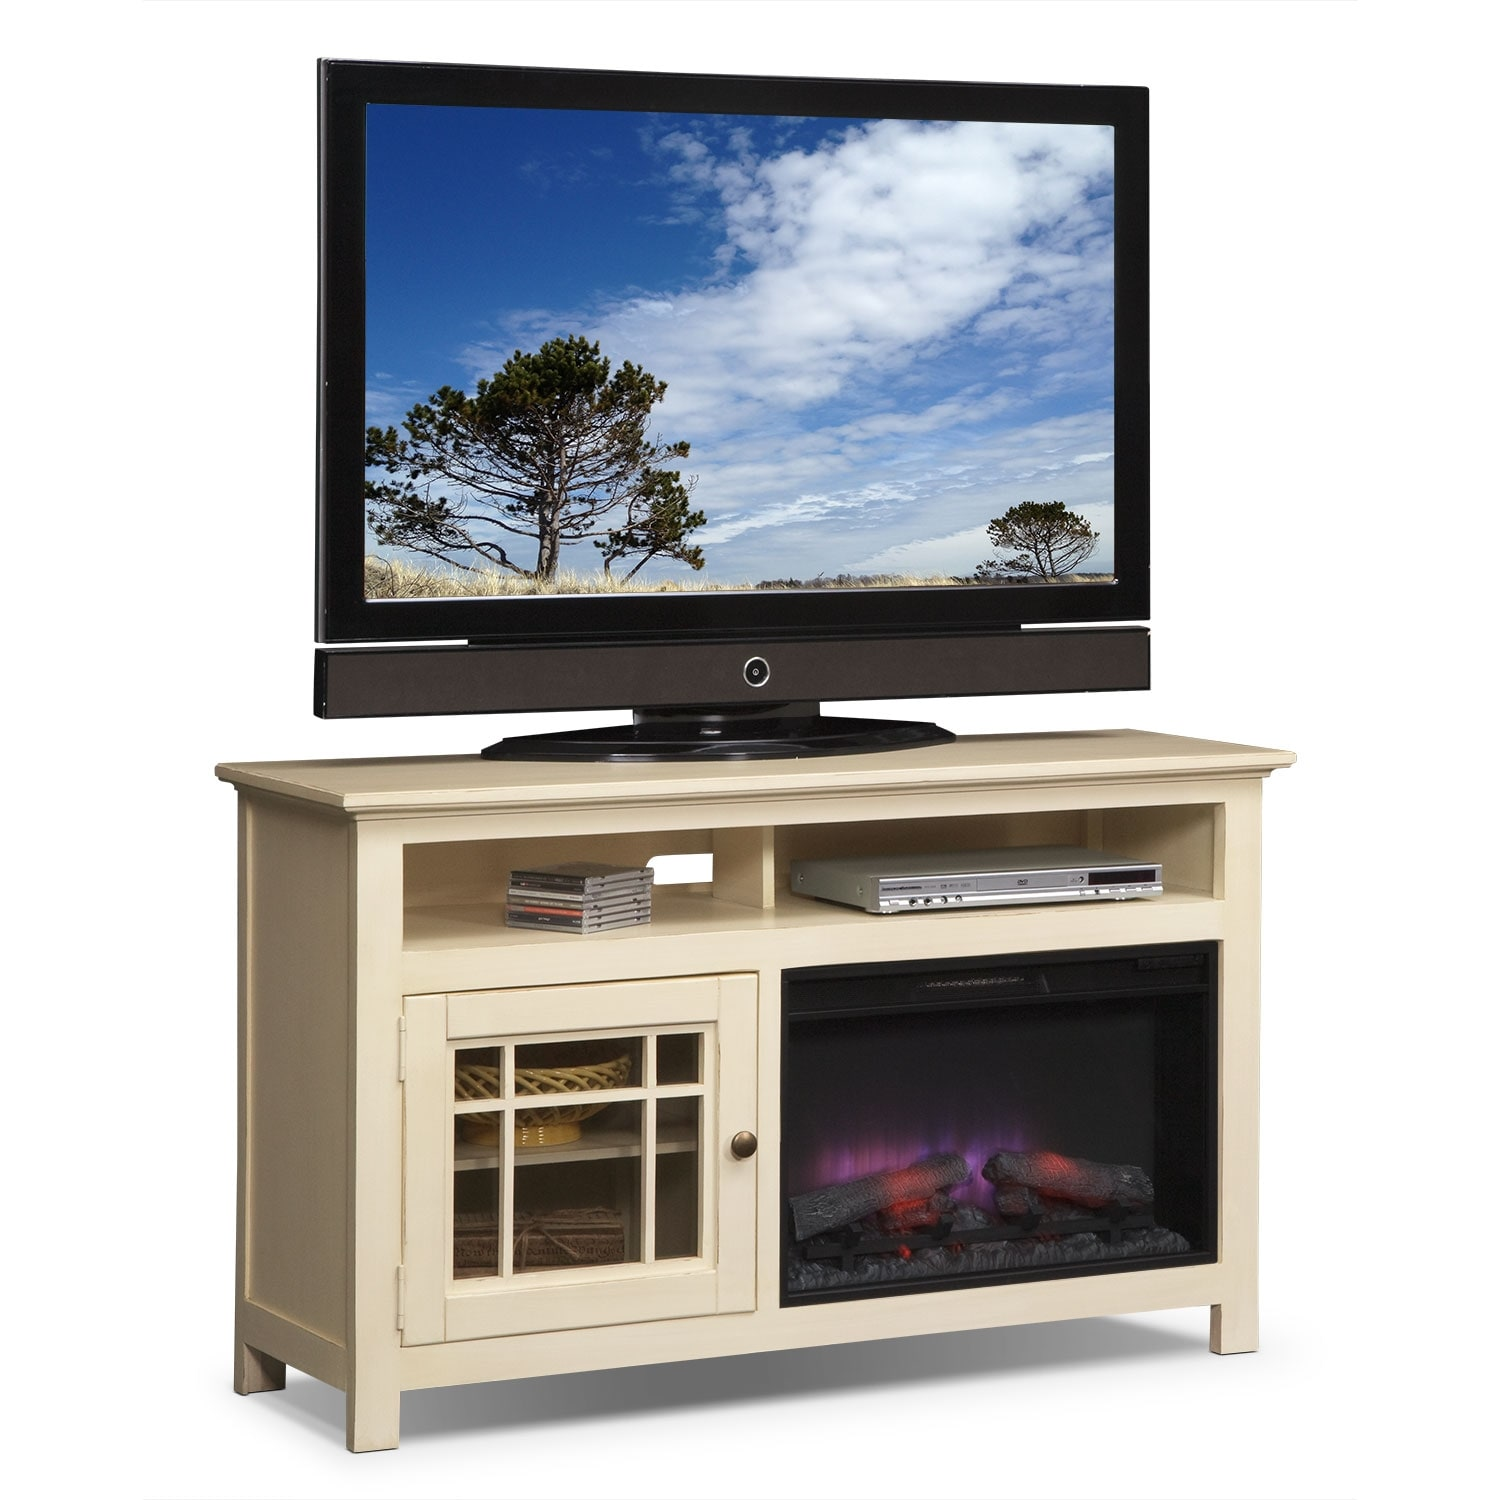 Merrick White 54 Fireplace Tv Stand Value City Furniture